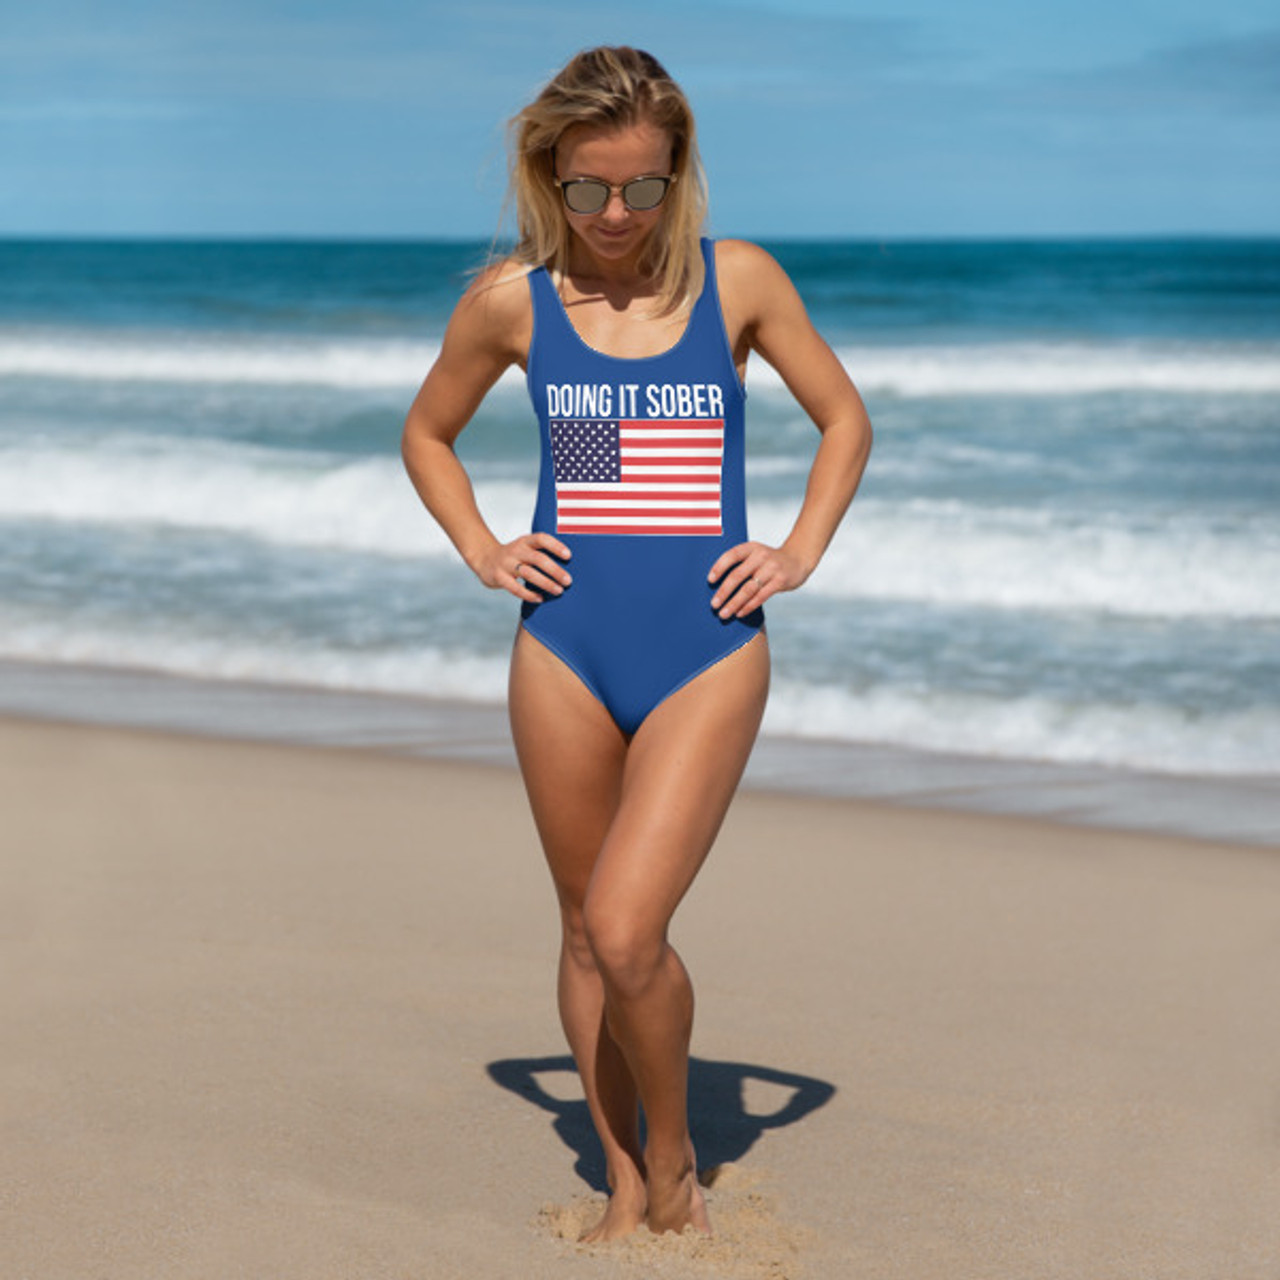 40b8e0fc373 Original Doing It Sober July 4th Flag on a Women's One-Piece Swimsuit -  Perfect Suit for Summer!